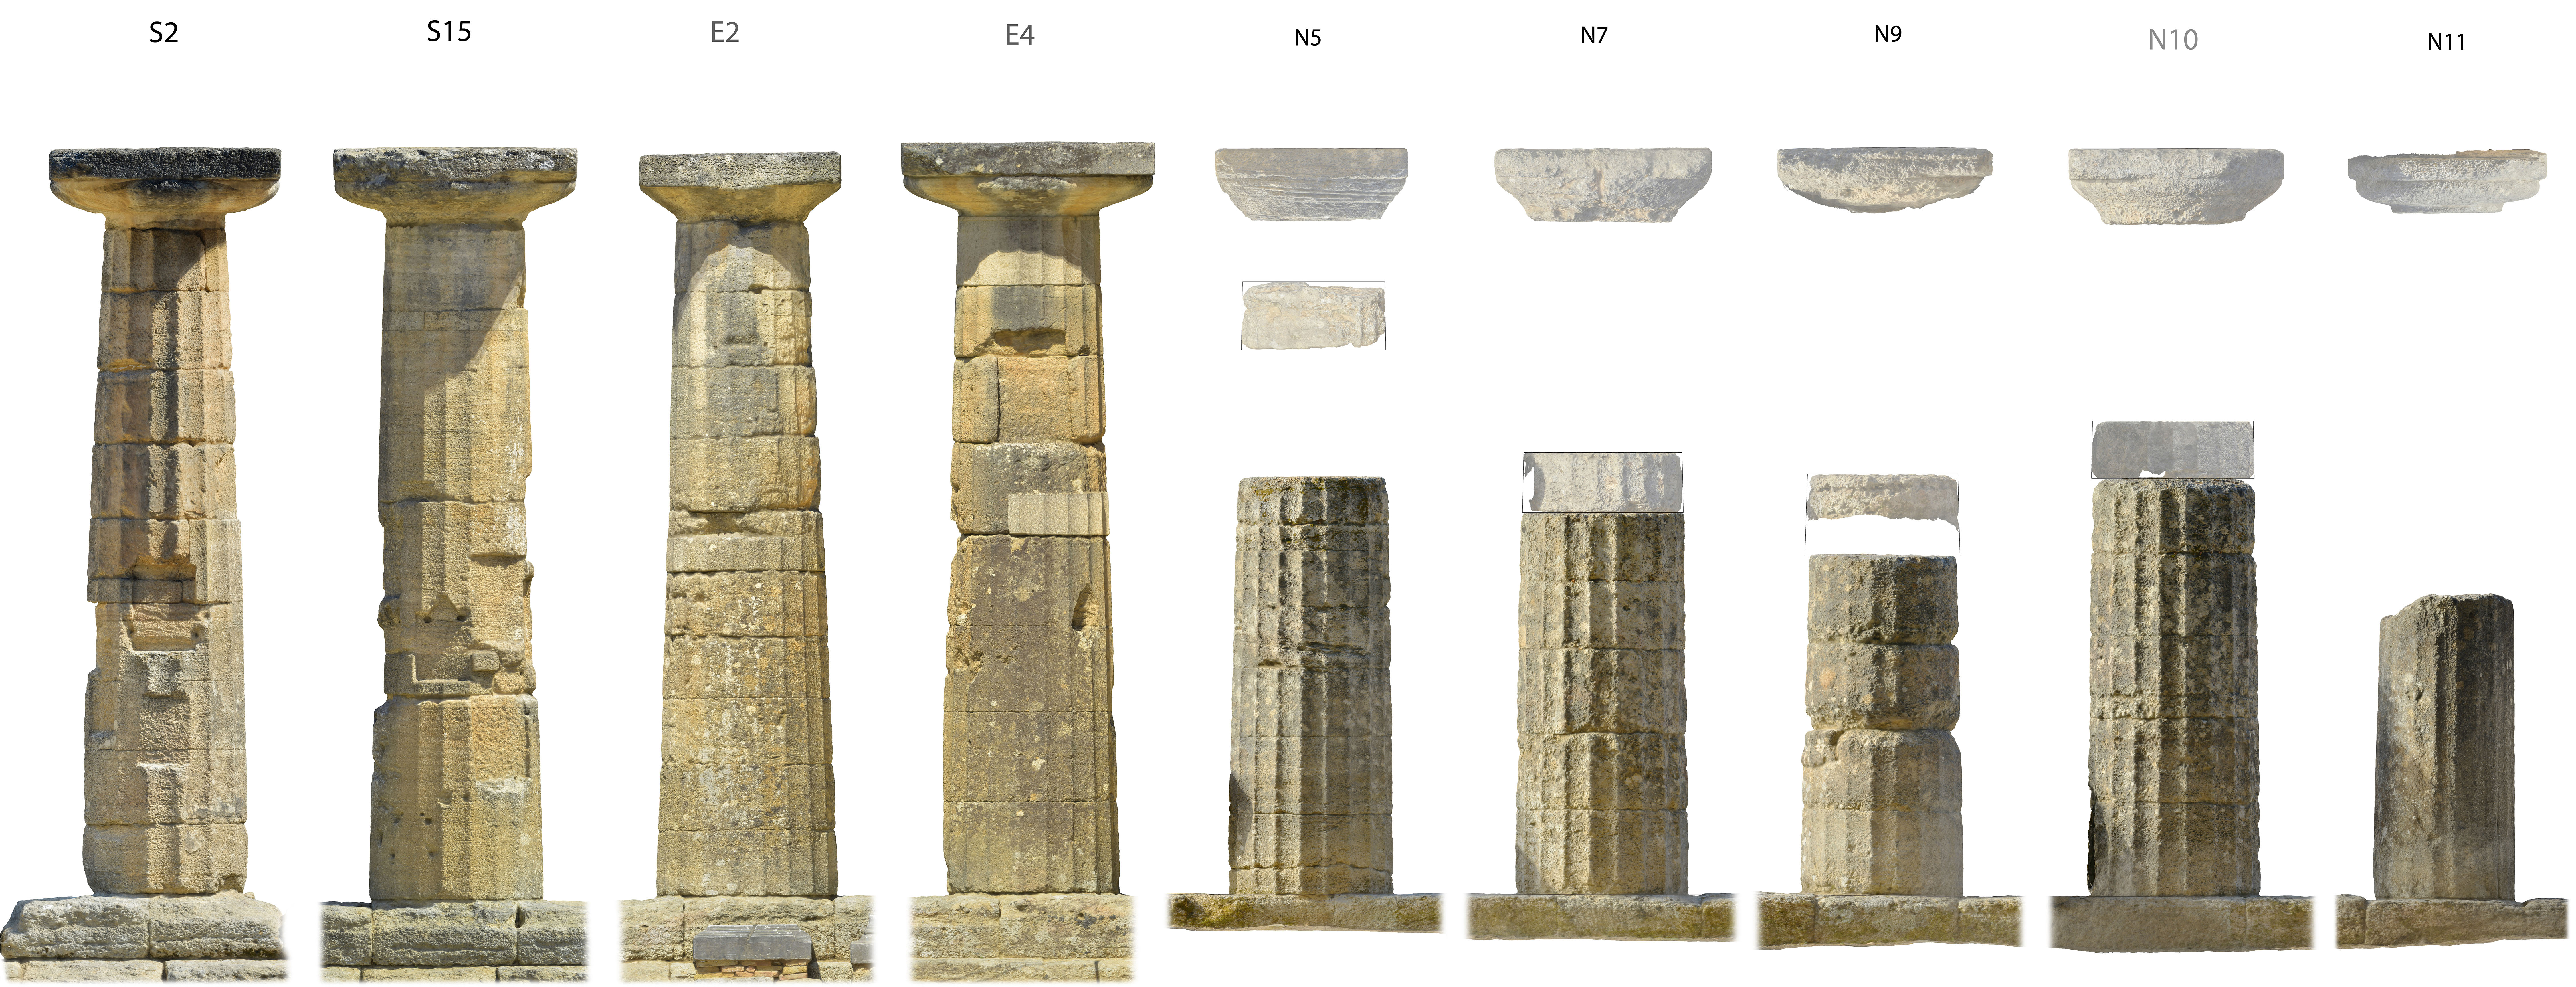 Sapirstein Uses 3 D Tech To Further Study Of Greek Architecture